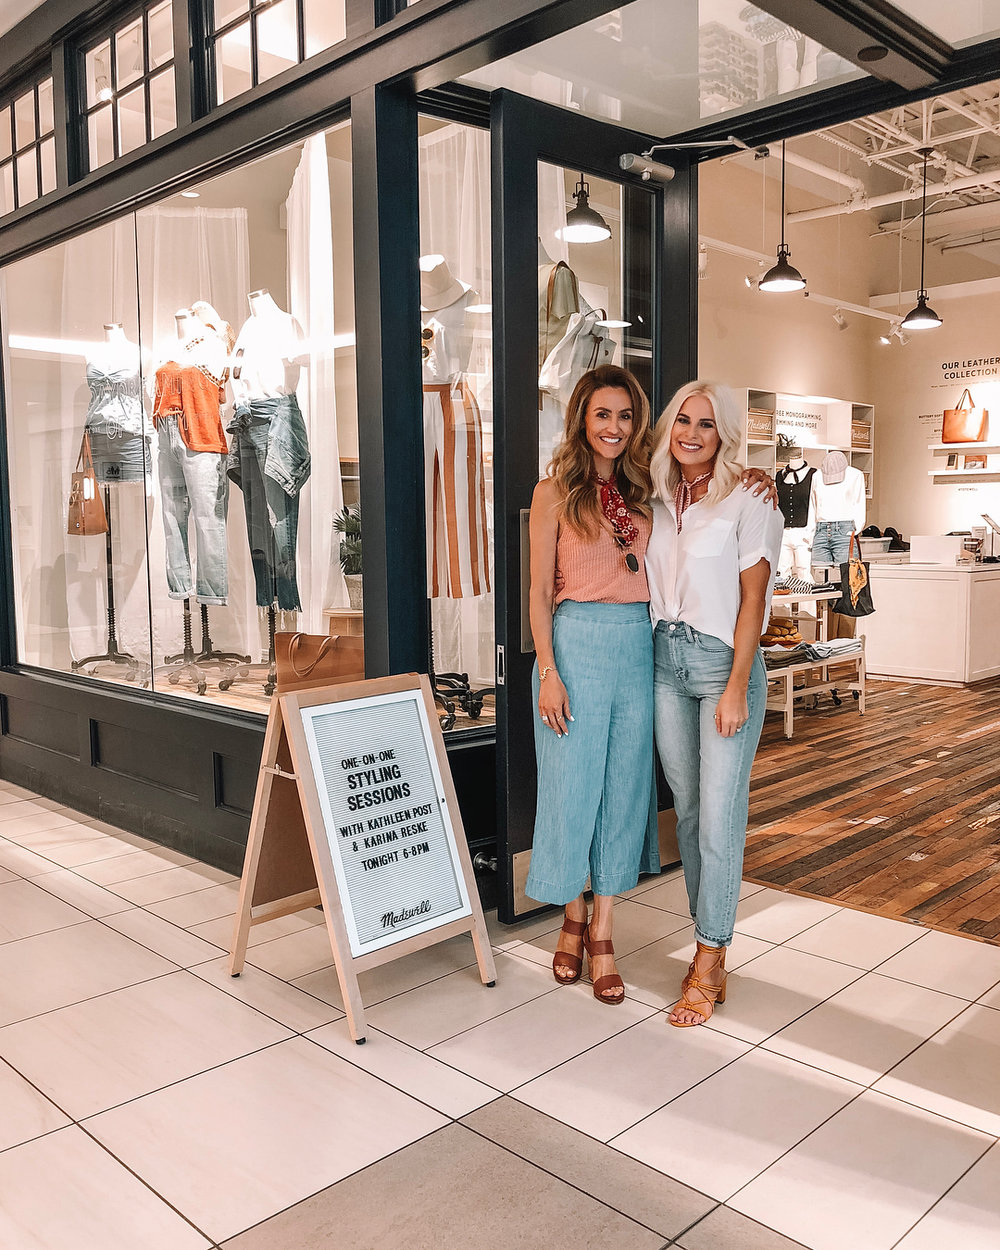 - Hosted an event at Madewell with Karina and got to meet so many of you lovely people!